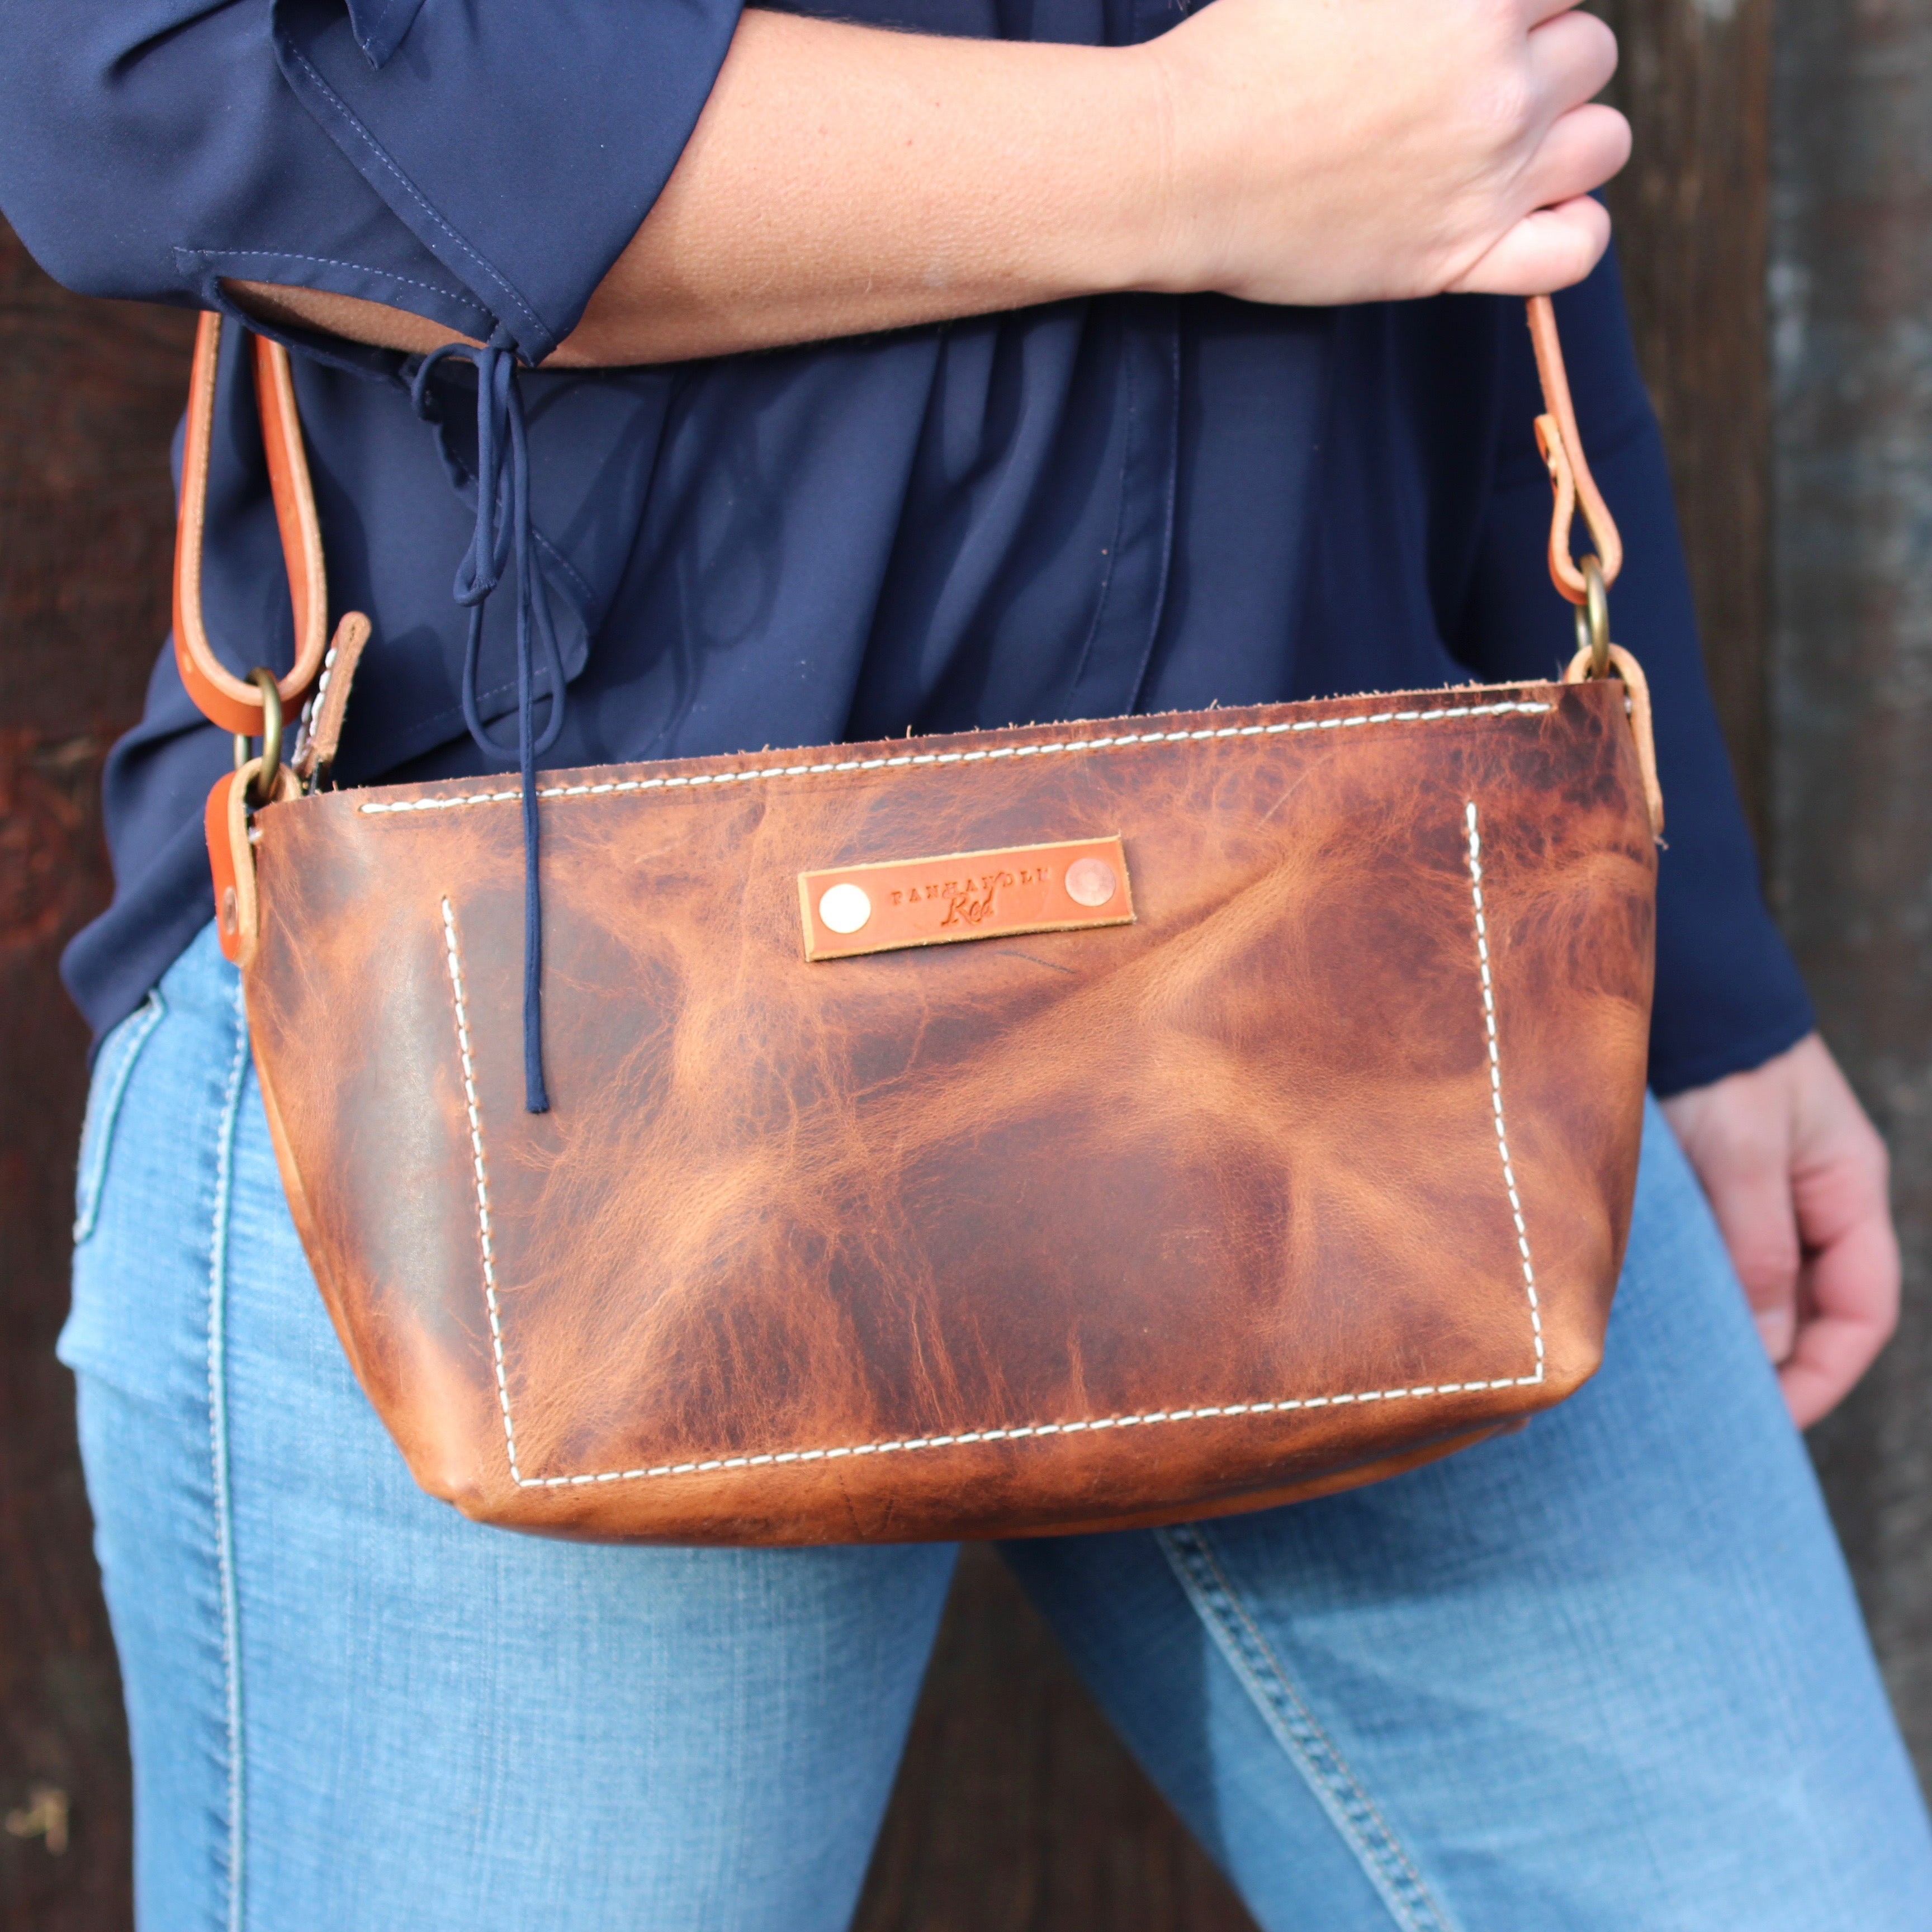 Brown Leather Crossbody Purse, Leather crossbody purse, crossbody purse, Panhandle Red Company, Leather Goods, Handbags, Leather Totes, Leather Duffles, Leather Bags,  Purses, Everyday Carry Needs, and more. Full-grain leather items, custom gifts, all Handcrafted in Idaho, USA.